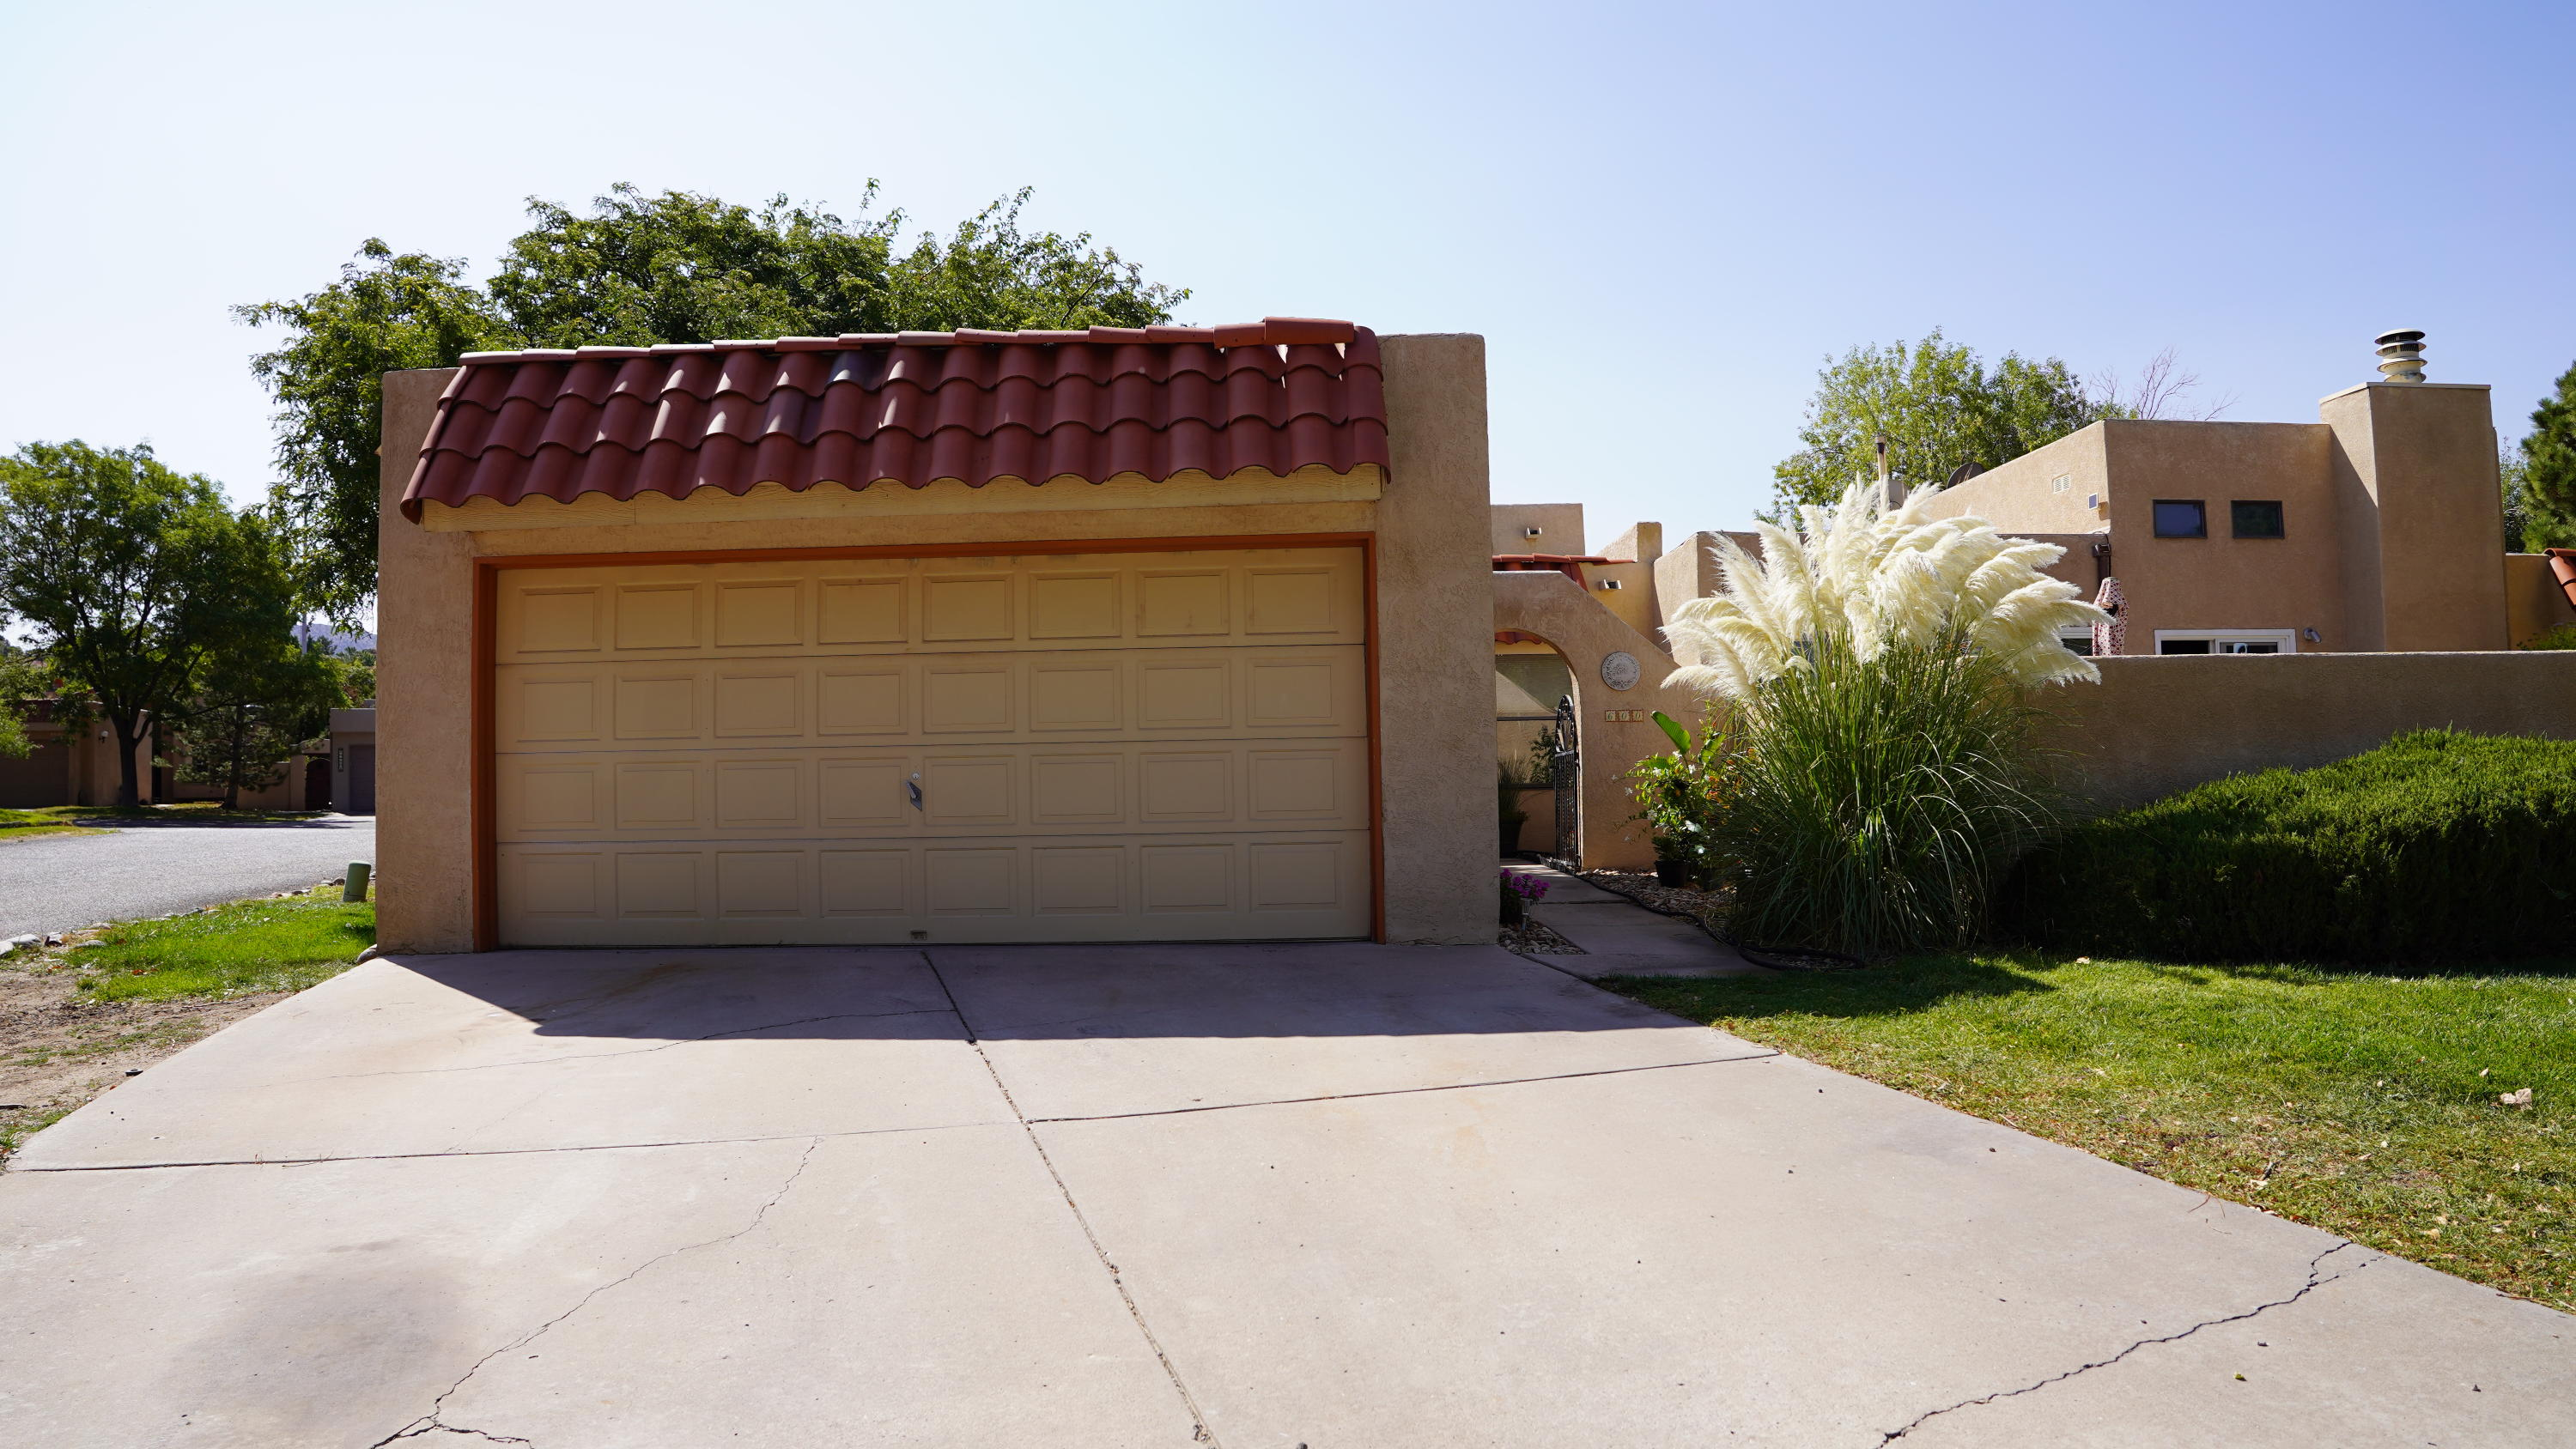 Come and see this  townhome in desirable Hidden Valley. Well maintained with updated kitchen that has stainless steel appliances, granite counter tops, bar top that opens up to your wonderful high ceiling living room that has plenty of natural light, cozy fireplace, with a nice small open aired patio. Master suite is separate from the other two bedrooms and has a upgraded bathroom with snail shower, walk in closet and has access to the back yard. Two secondary bedrooms one with a hideaway bed that will be great for an office. bedroom 3 was turned into a large laundry room, but you can convert it back if needed. Beautiful Private backyard that has covered patio, turf lawn and hot tub that will convey! HOA Covers Water, Trash, Sewer, landscaping, pool and community facilities.